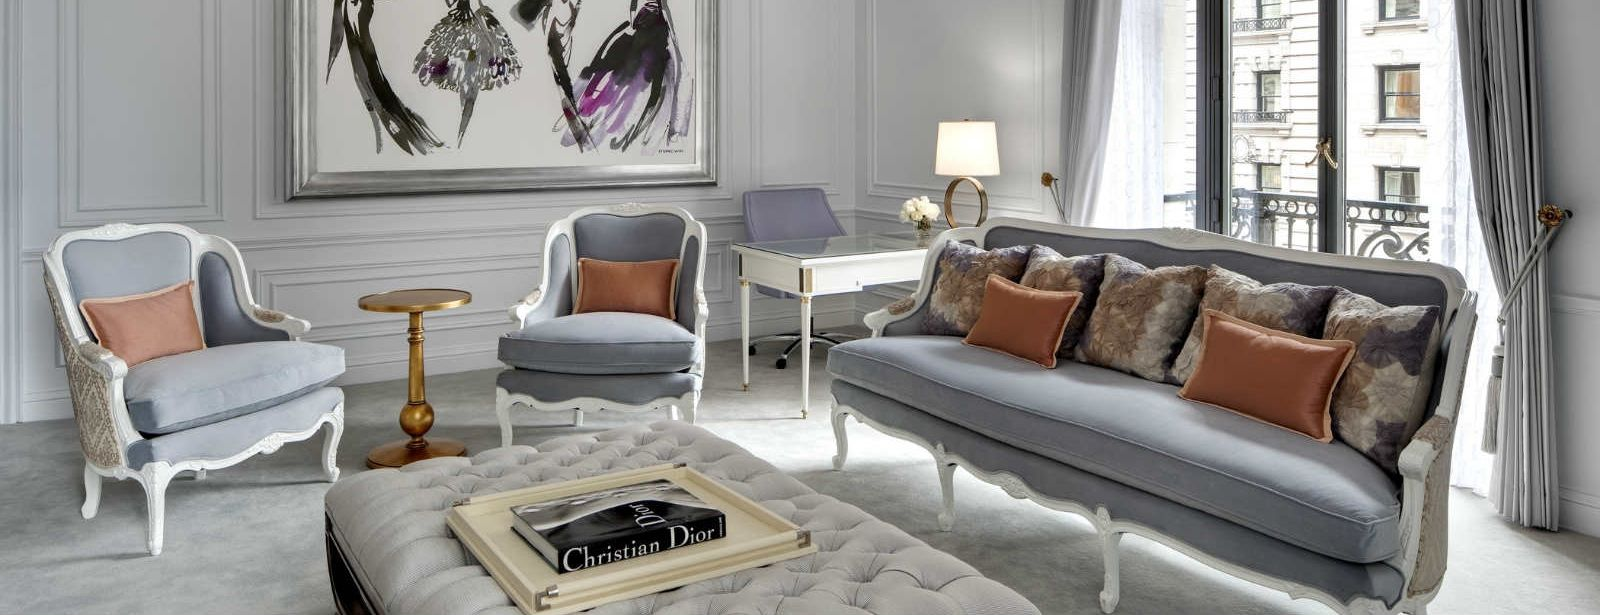 Manhattan Accommodations | Dior Suite